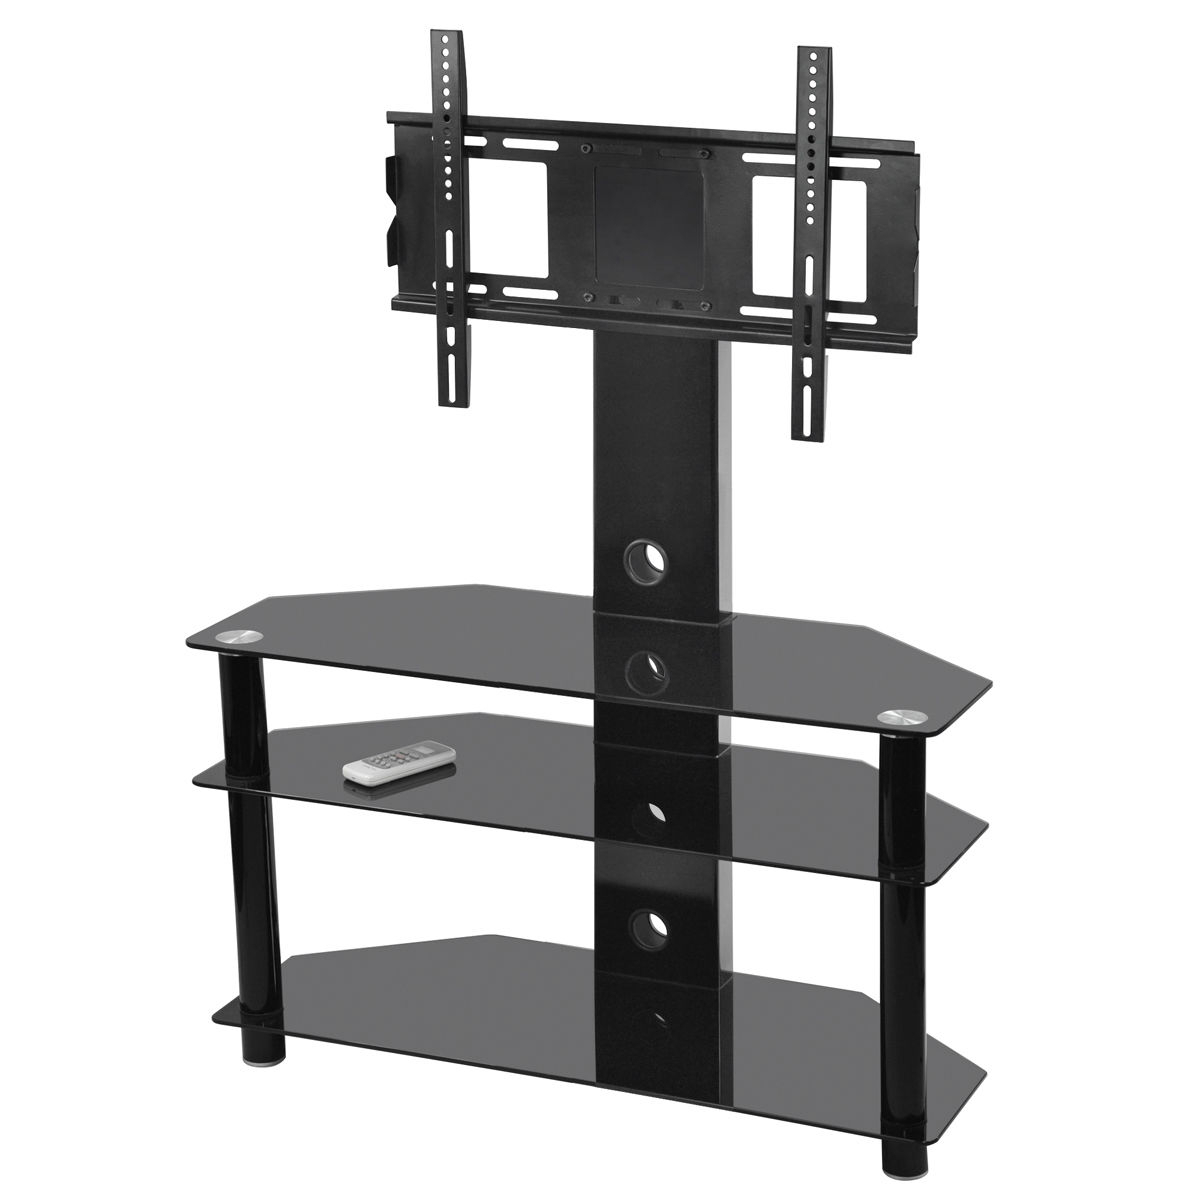 Single Tv Stands Regarding Well Liked Column Tv Stand Roman With Mount Single Stands – Buyouapp (View 13 of 20)